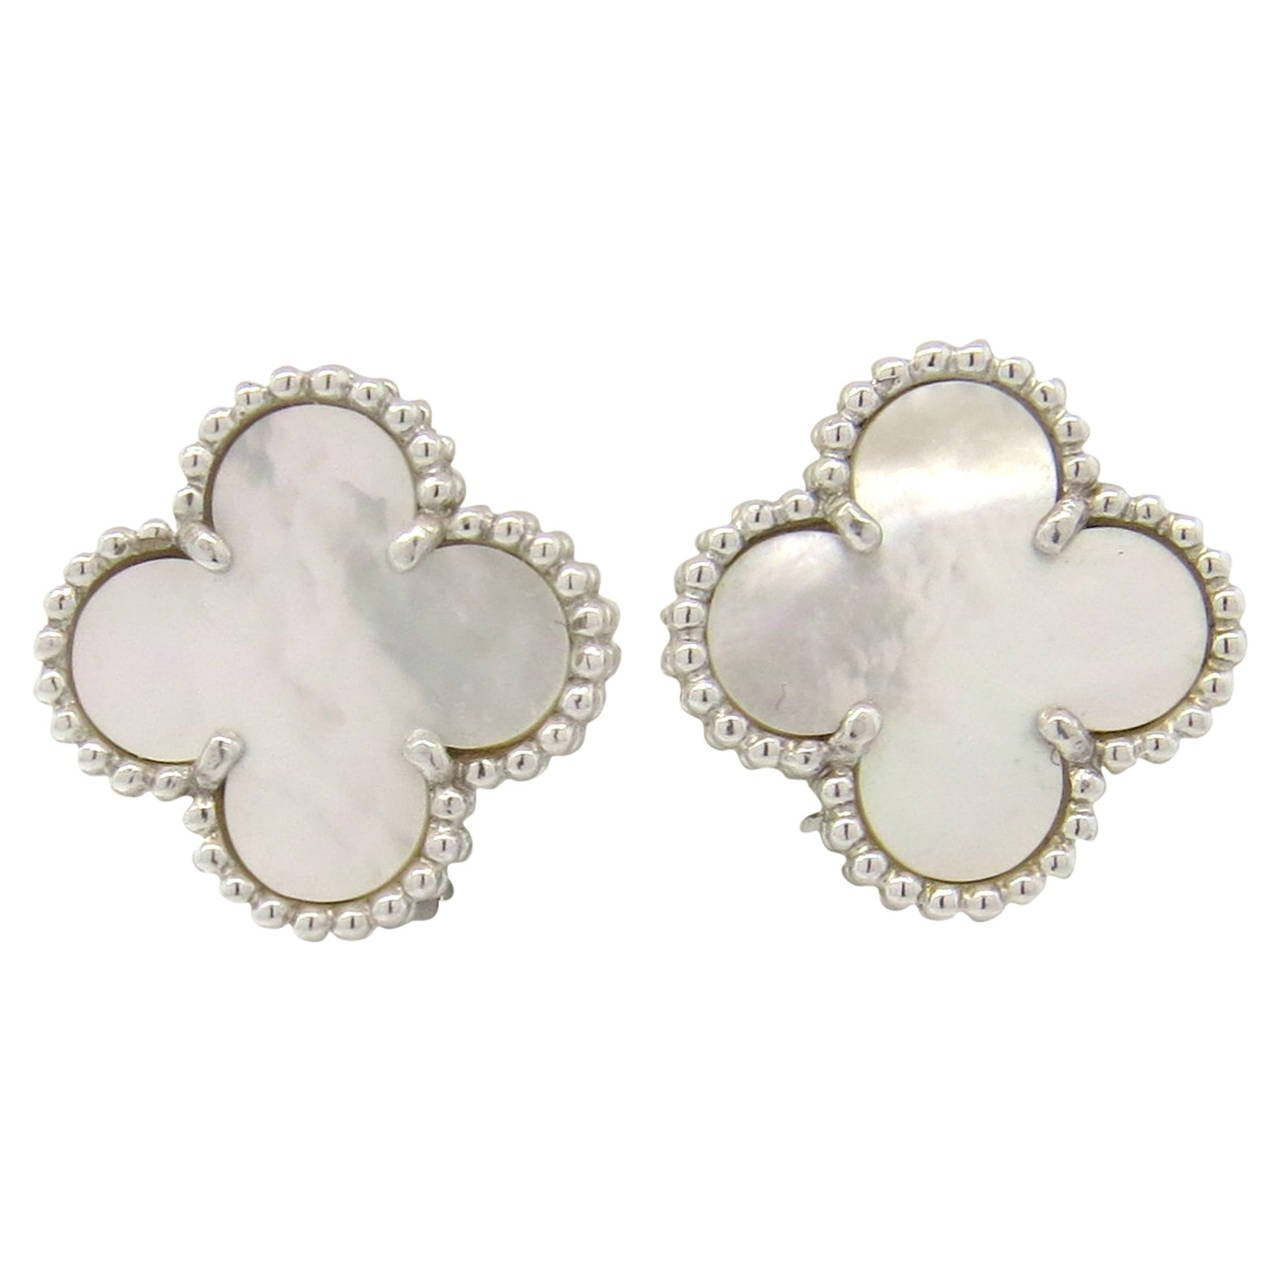 Estate 14 Karat white gold and mother of pearl clover earrings.